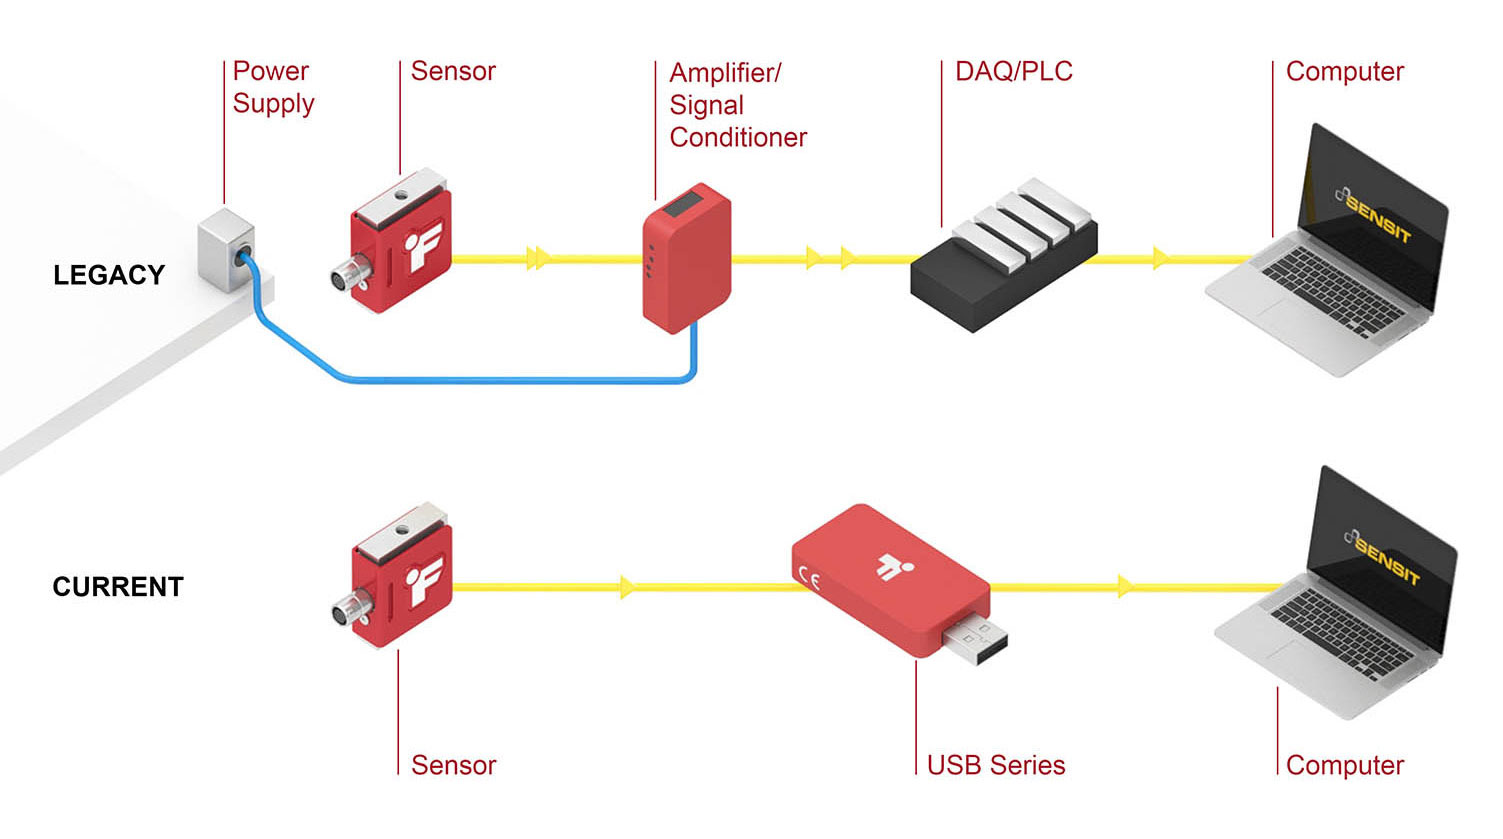 System diagram showing a legacy sensor solution where the sensor is connected to power and an amplifier/signal conditioner, connected to a DAQ/PLC, connected to a computer. Compare that to a system where the sensor is connected to a USB Series instrument that connects directly to the computer.